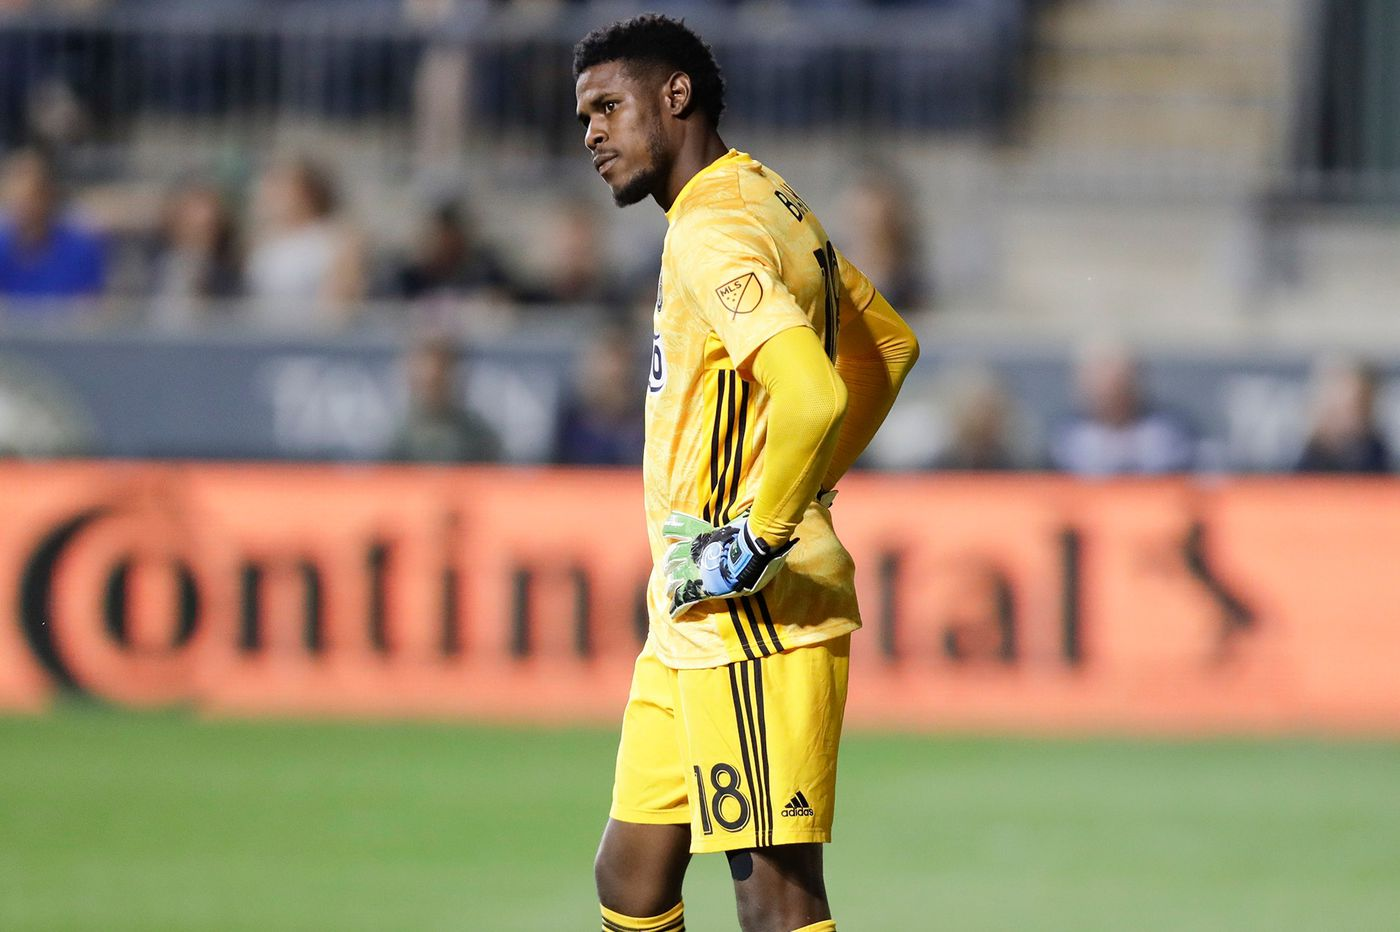 Rare Andre Blake gaffe costs Union in 2-0 loss at New York Red Bulls